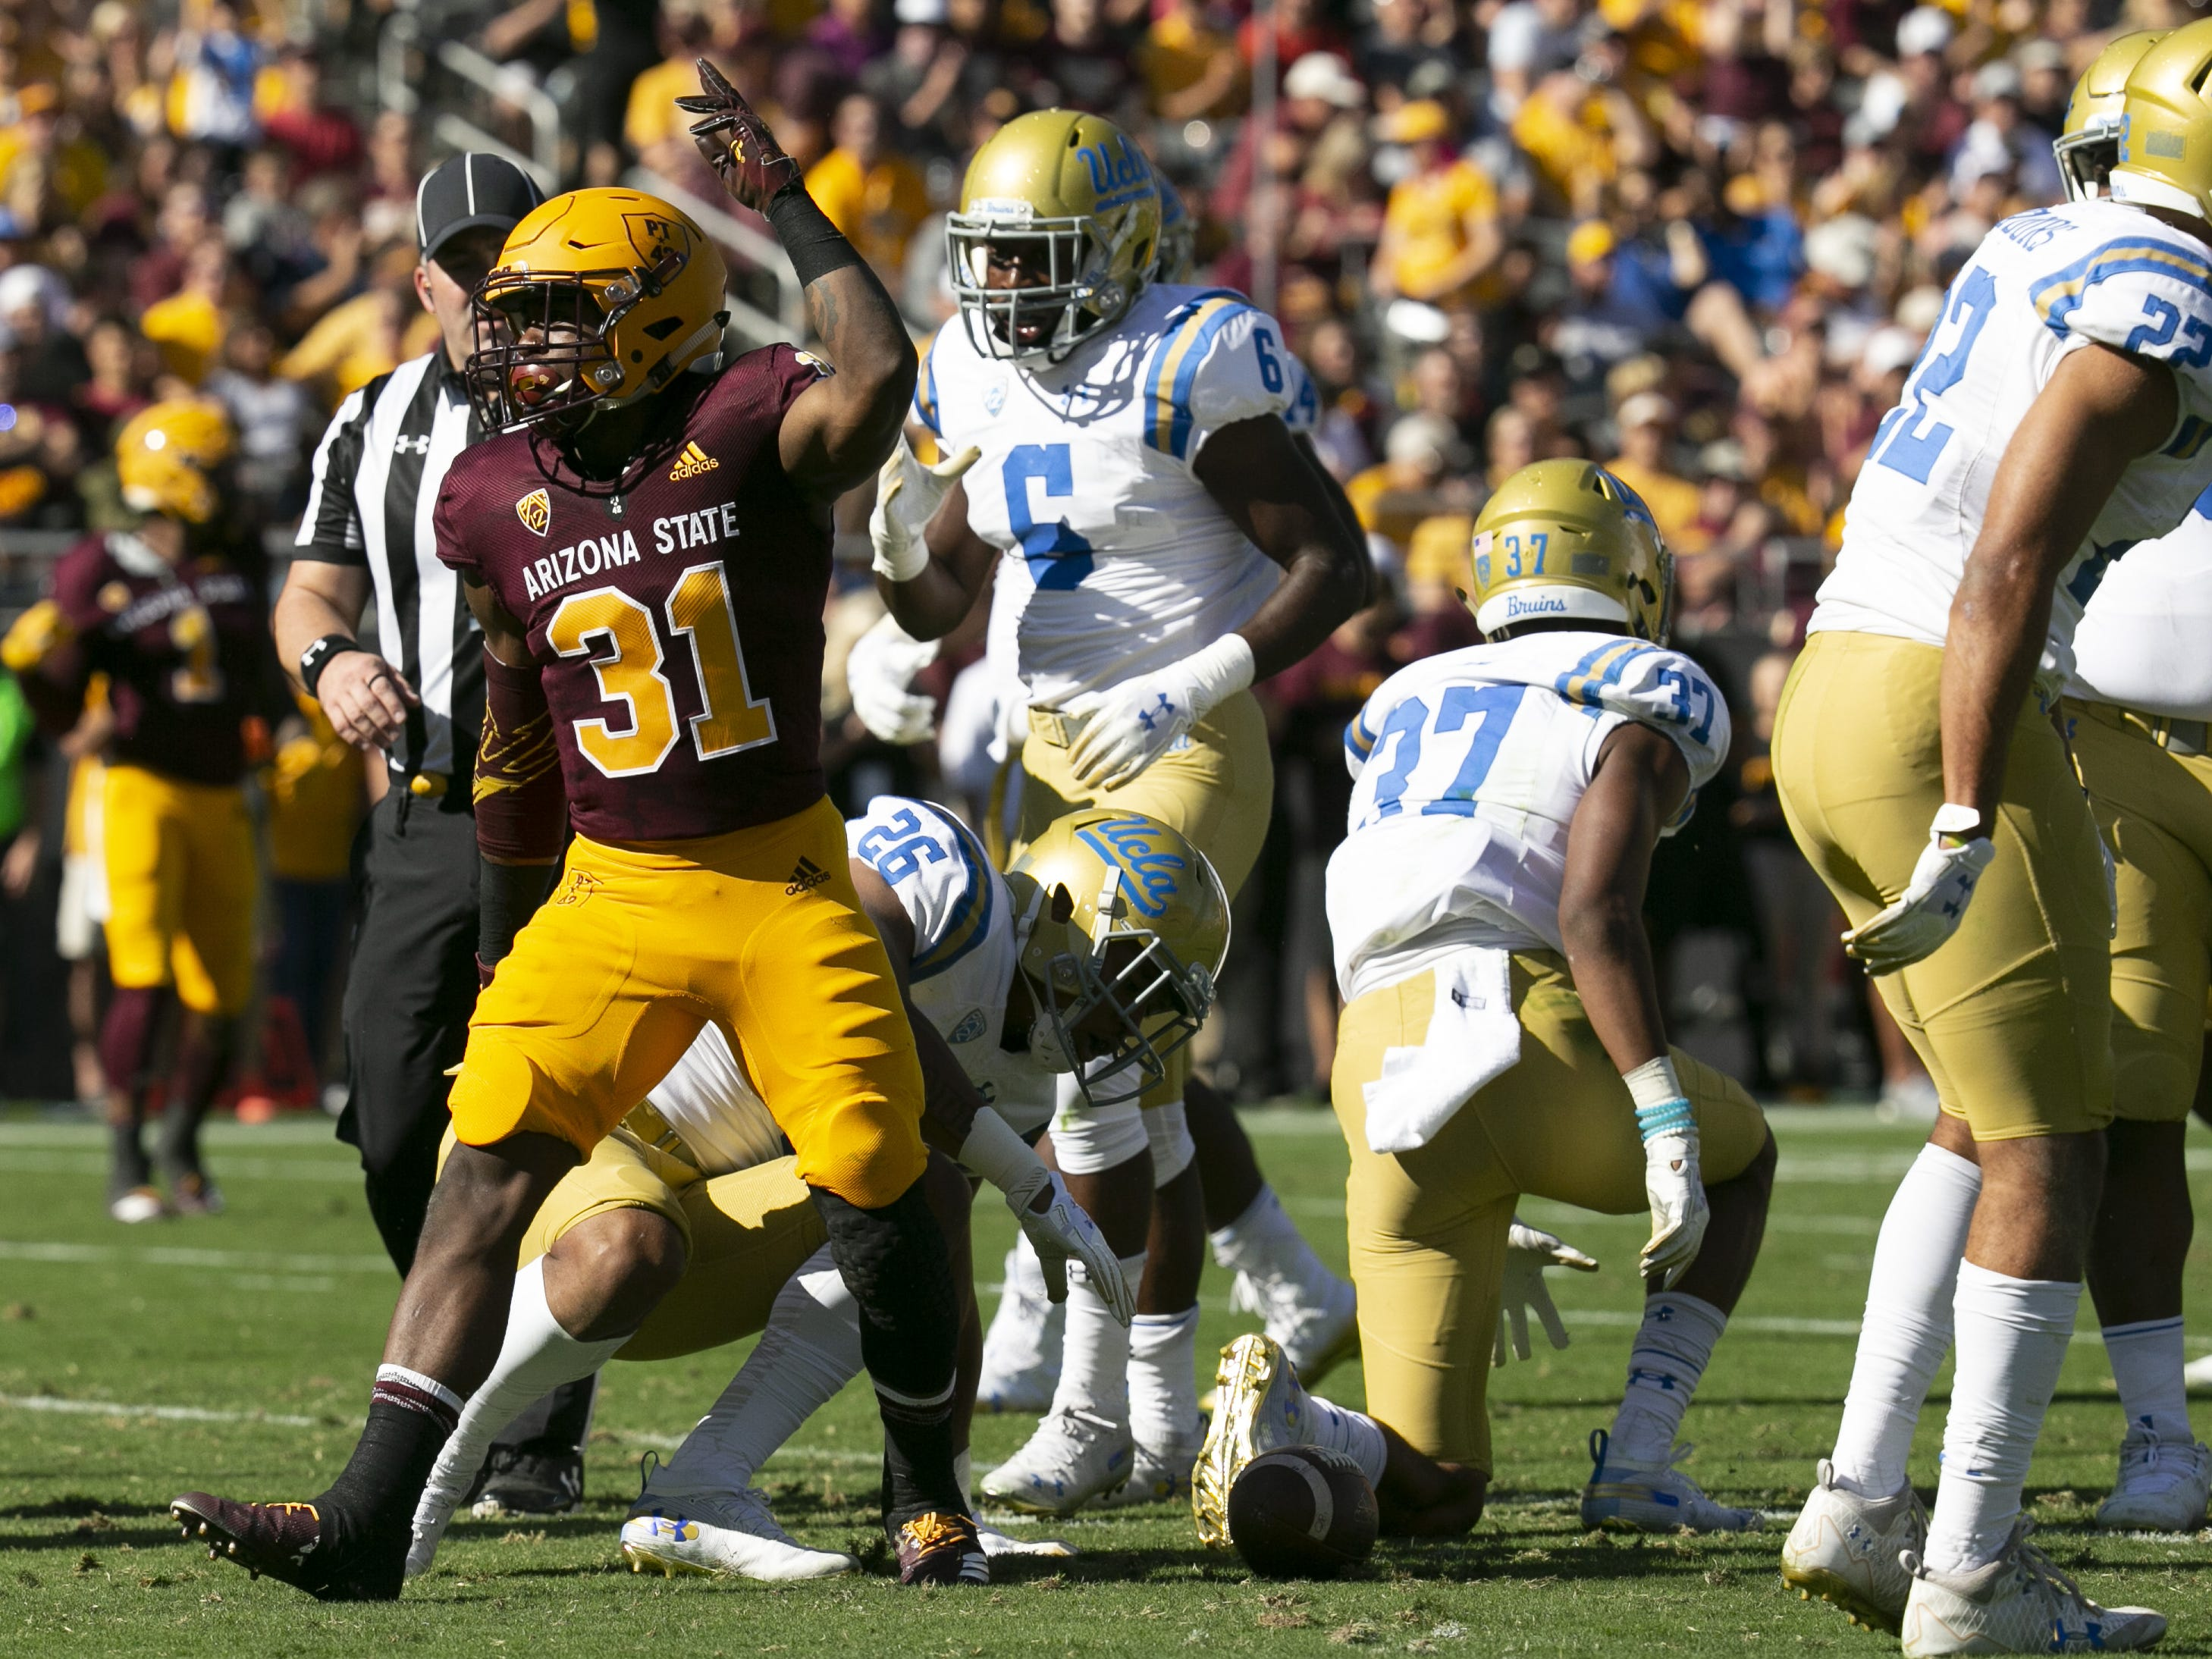 ASU running back Isaiah Floyd reacts after getting a first down on a carry against UCLA during the second quarter of the PAC-12 college football game at Sun Devil Stadium in Tempe on Saturday, November 10, 2018.